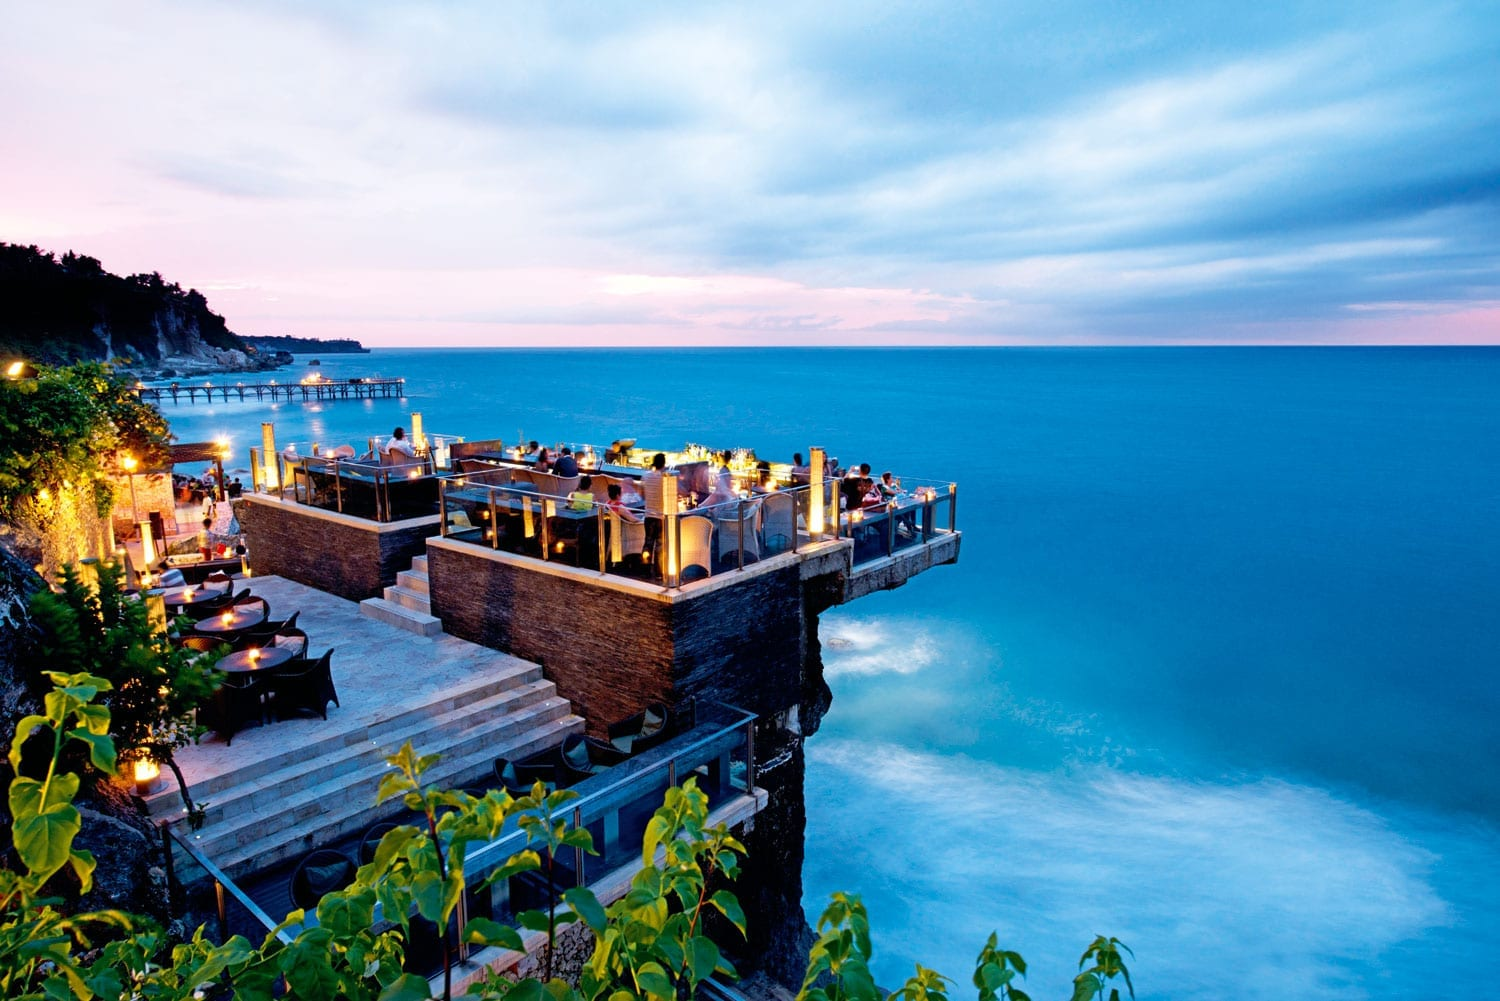 It Is One Of Bali S Most Acclaimed And Awarded Hotels Deserves Every Honor There Are 19 Restaurants Bars Including The Famous Rock Bar